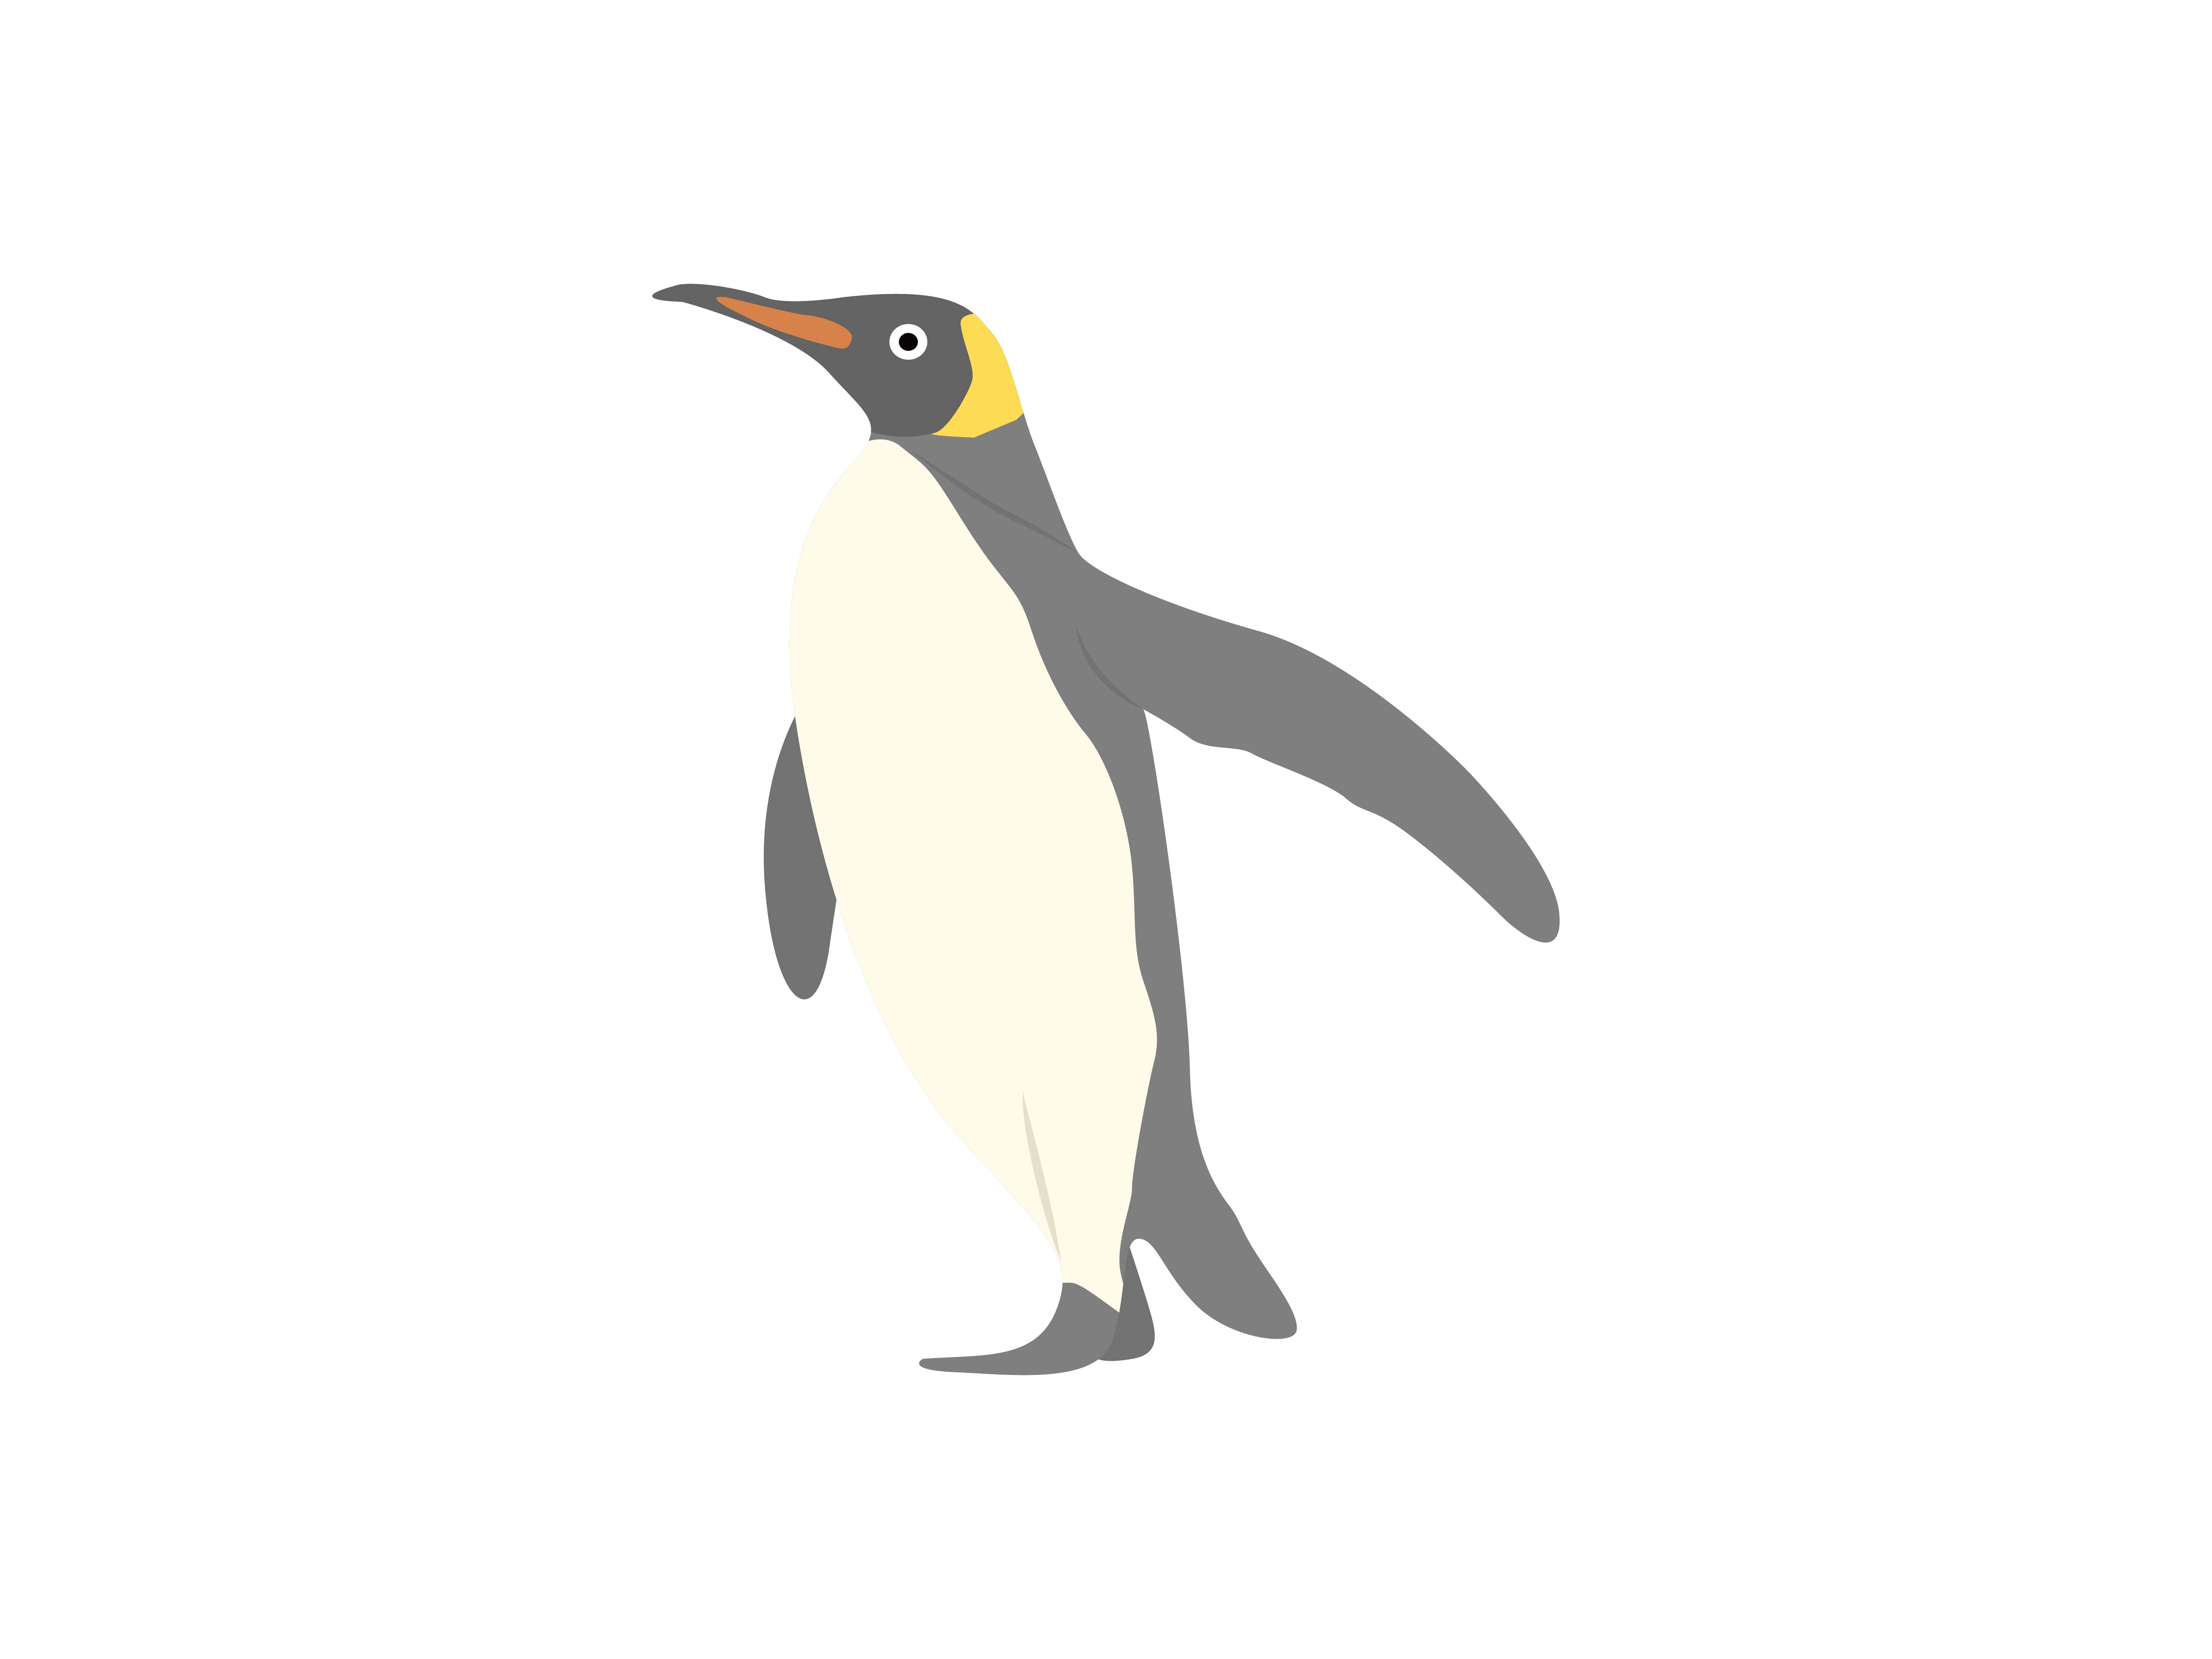 Download Free Penguin Animal Graphic By Archshape Creative Fabrica for Cricut Explore, Silhouette and other cutting machines.